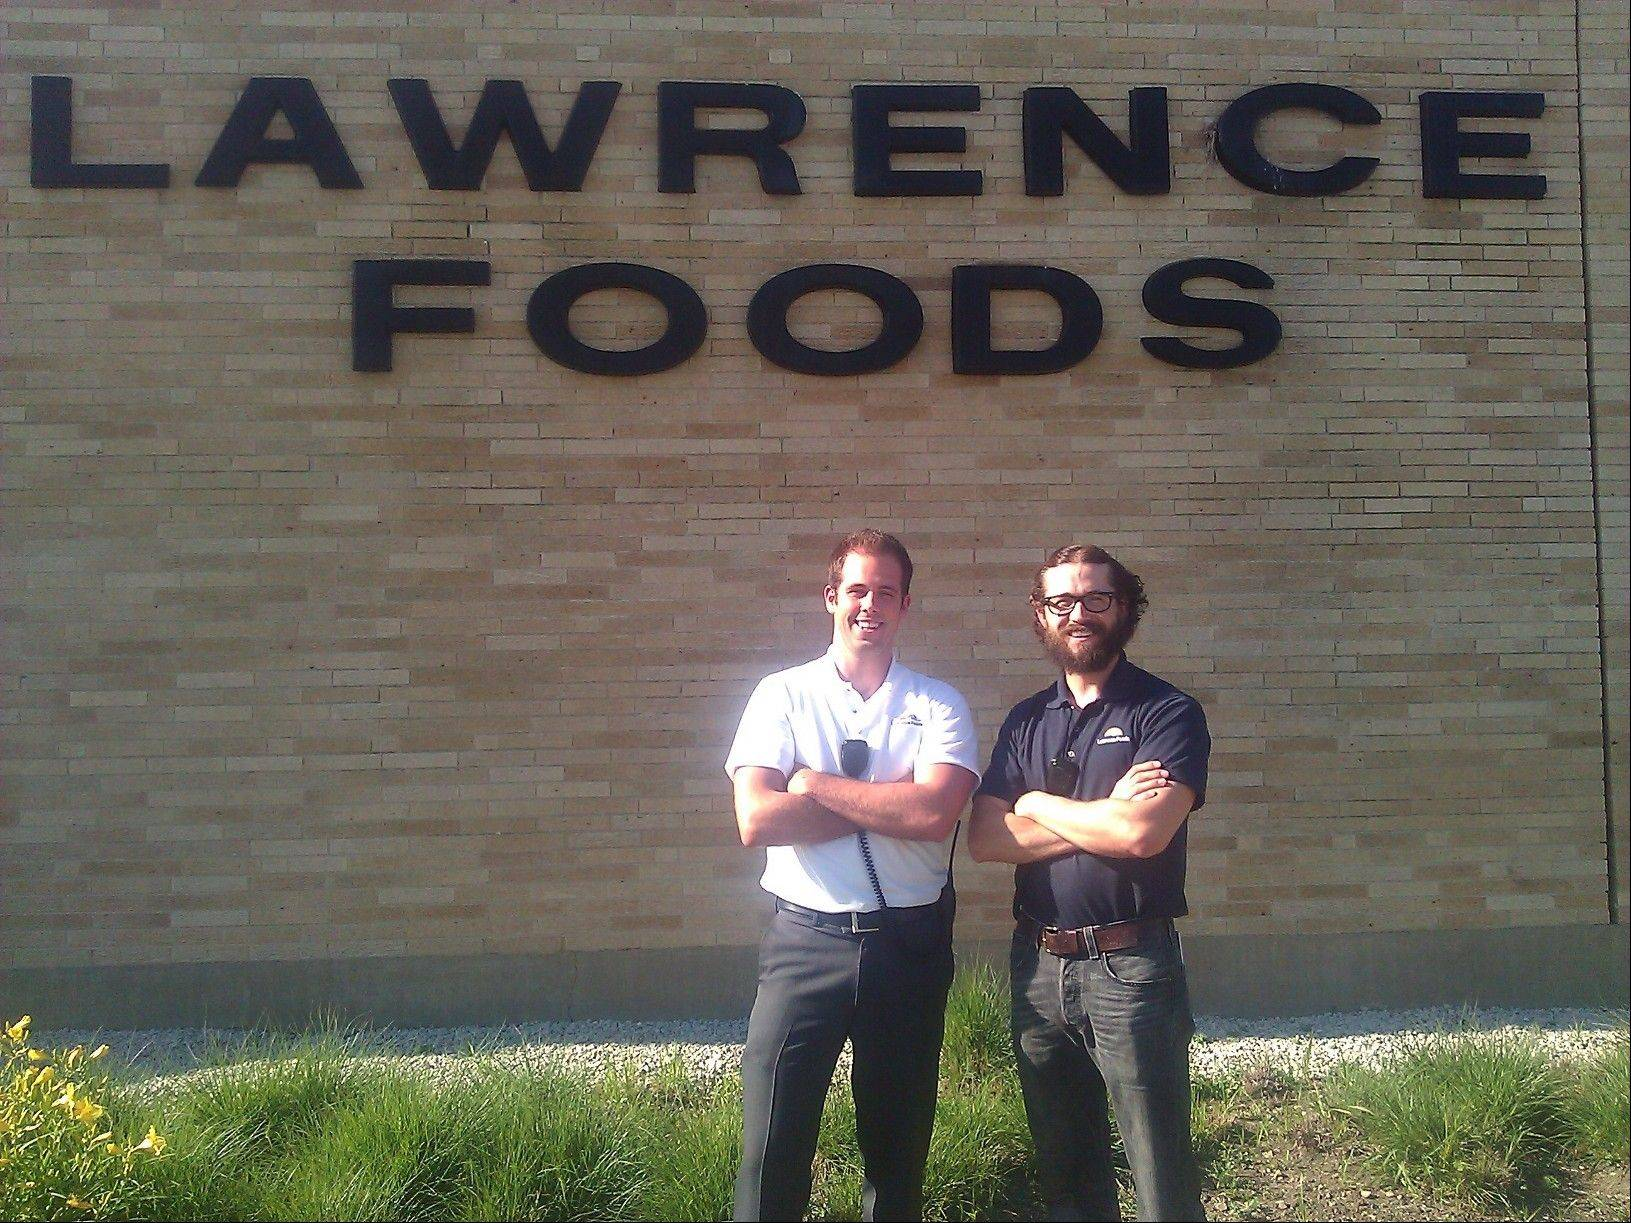 Matt Dyer, left, and Matthew Robinson stand in front of Lawrence Foods in Elk Grove Village, where they work. The two veterans will be running in the Spartan Death Race in Pittsfield, Vt., this summer to raise money for the Wounded Warriors Project.